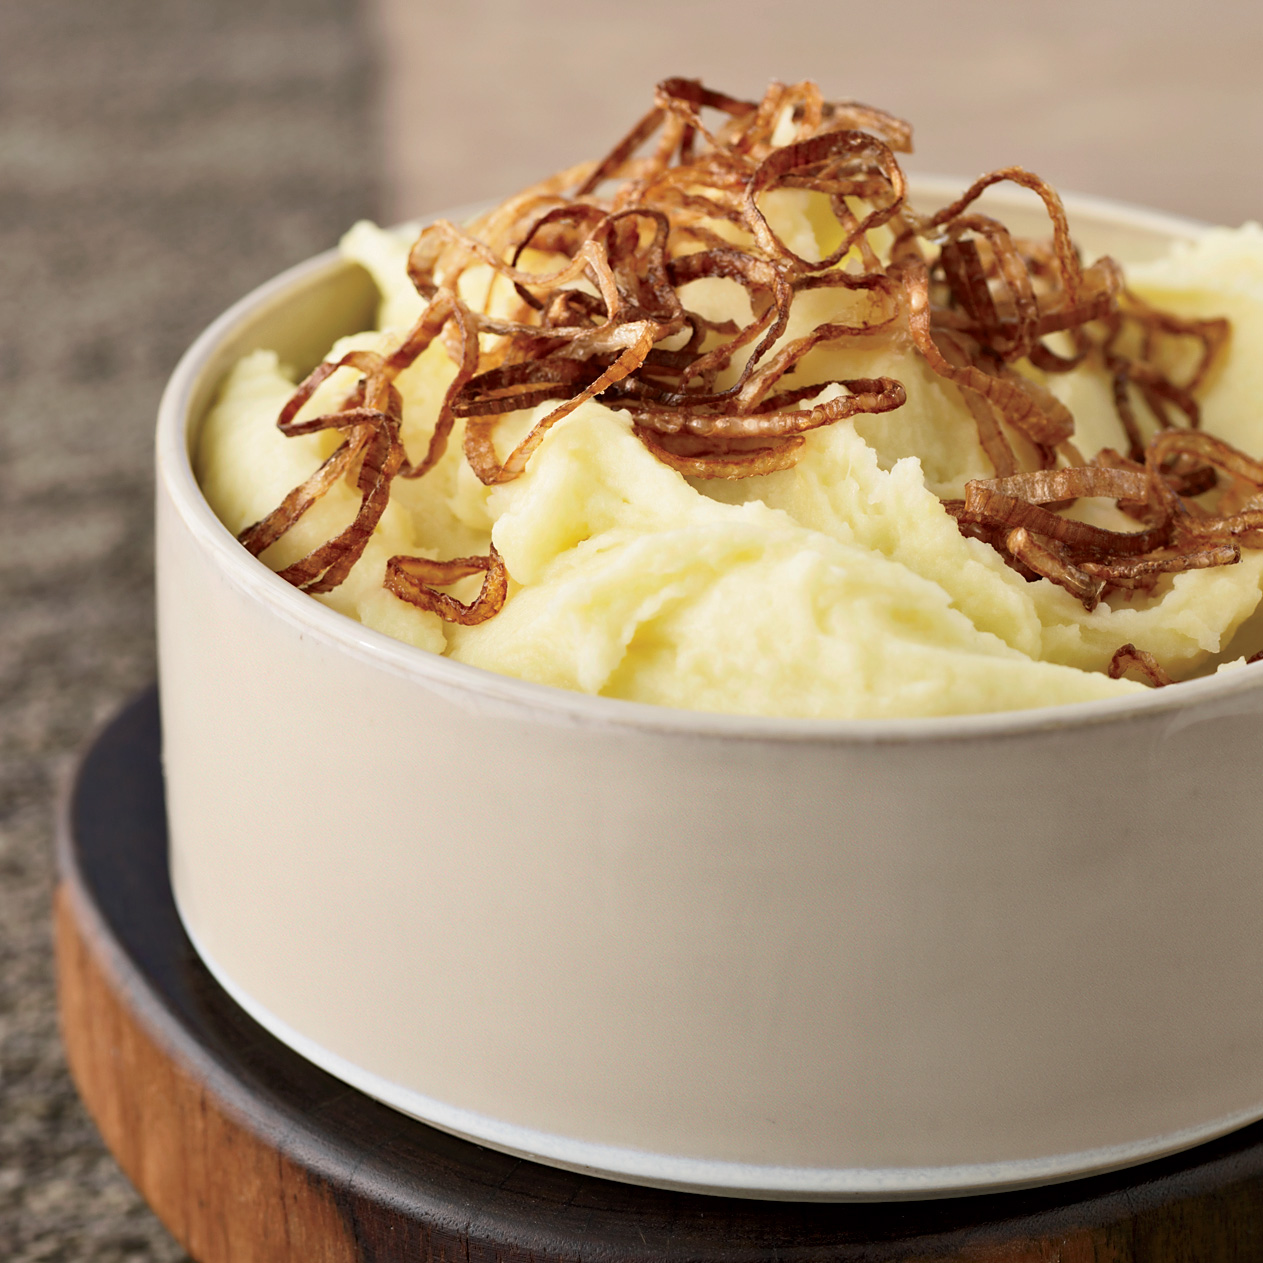 March 15: Mashed Potatoes with Crispy Shallots